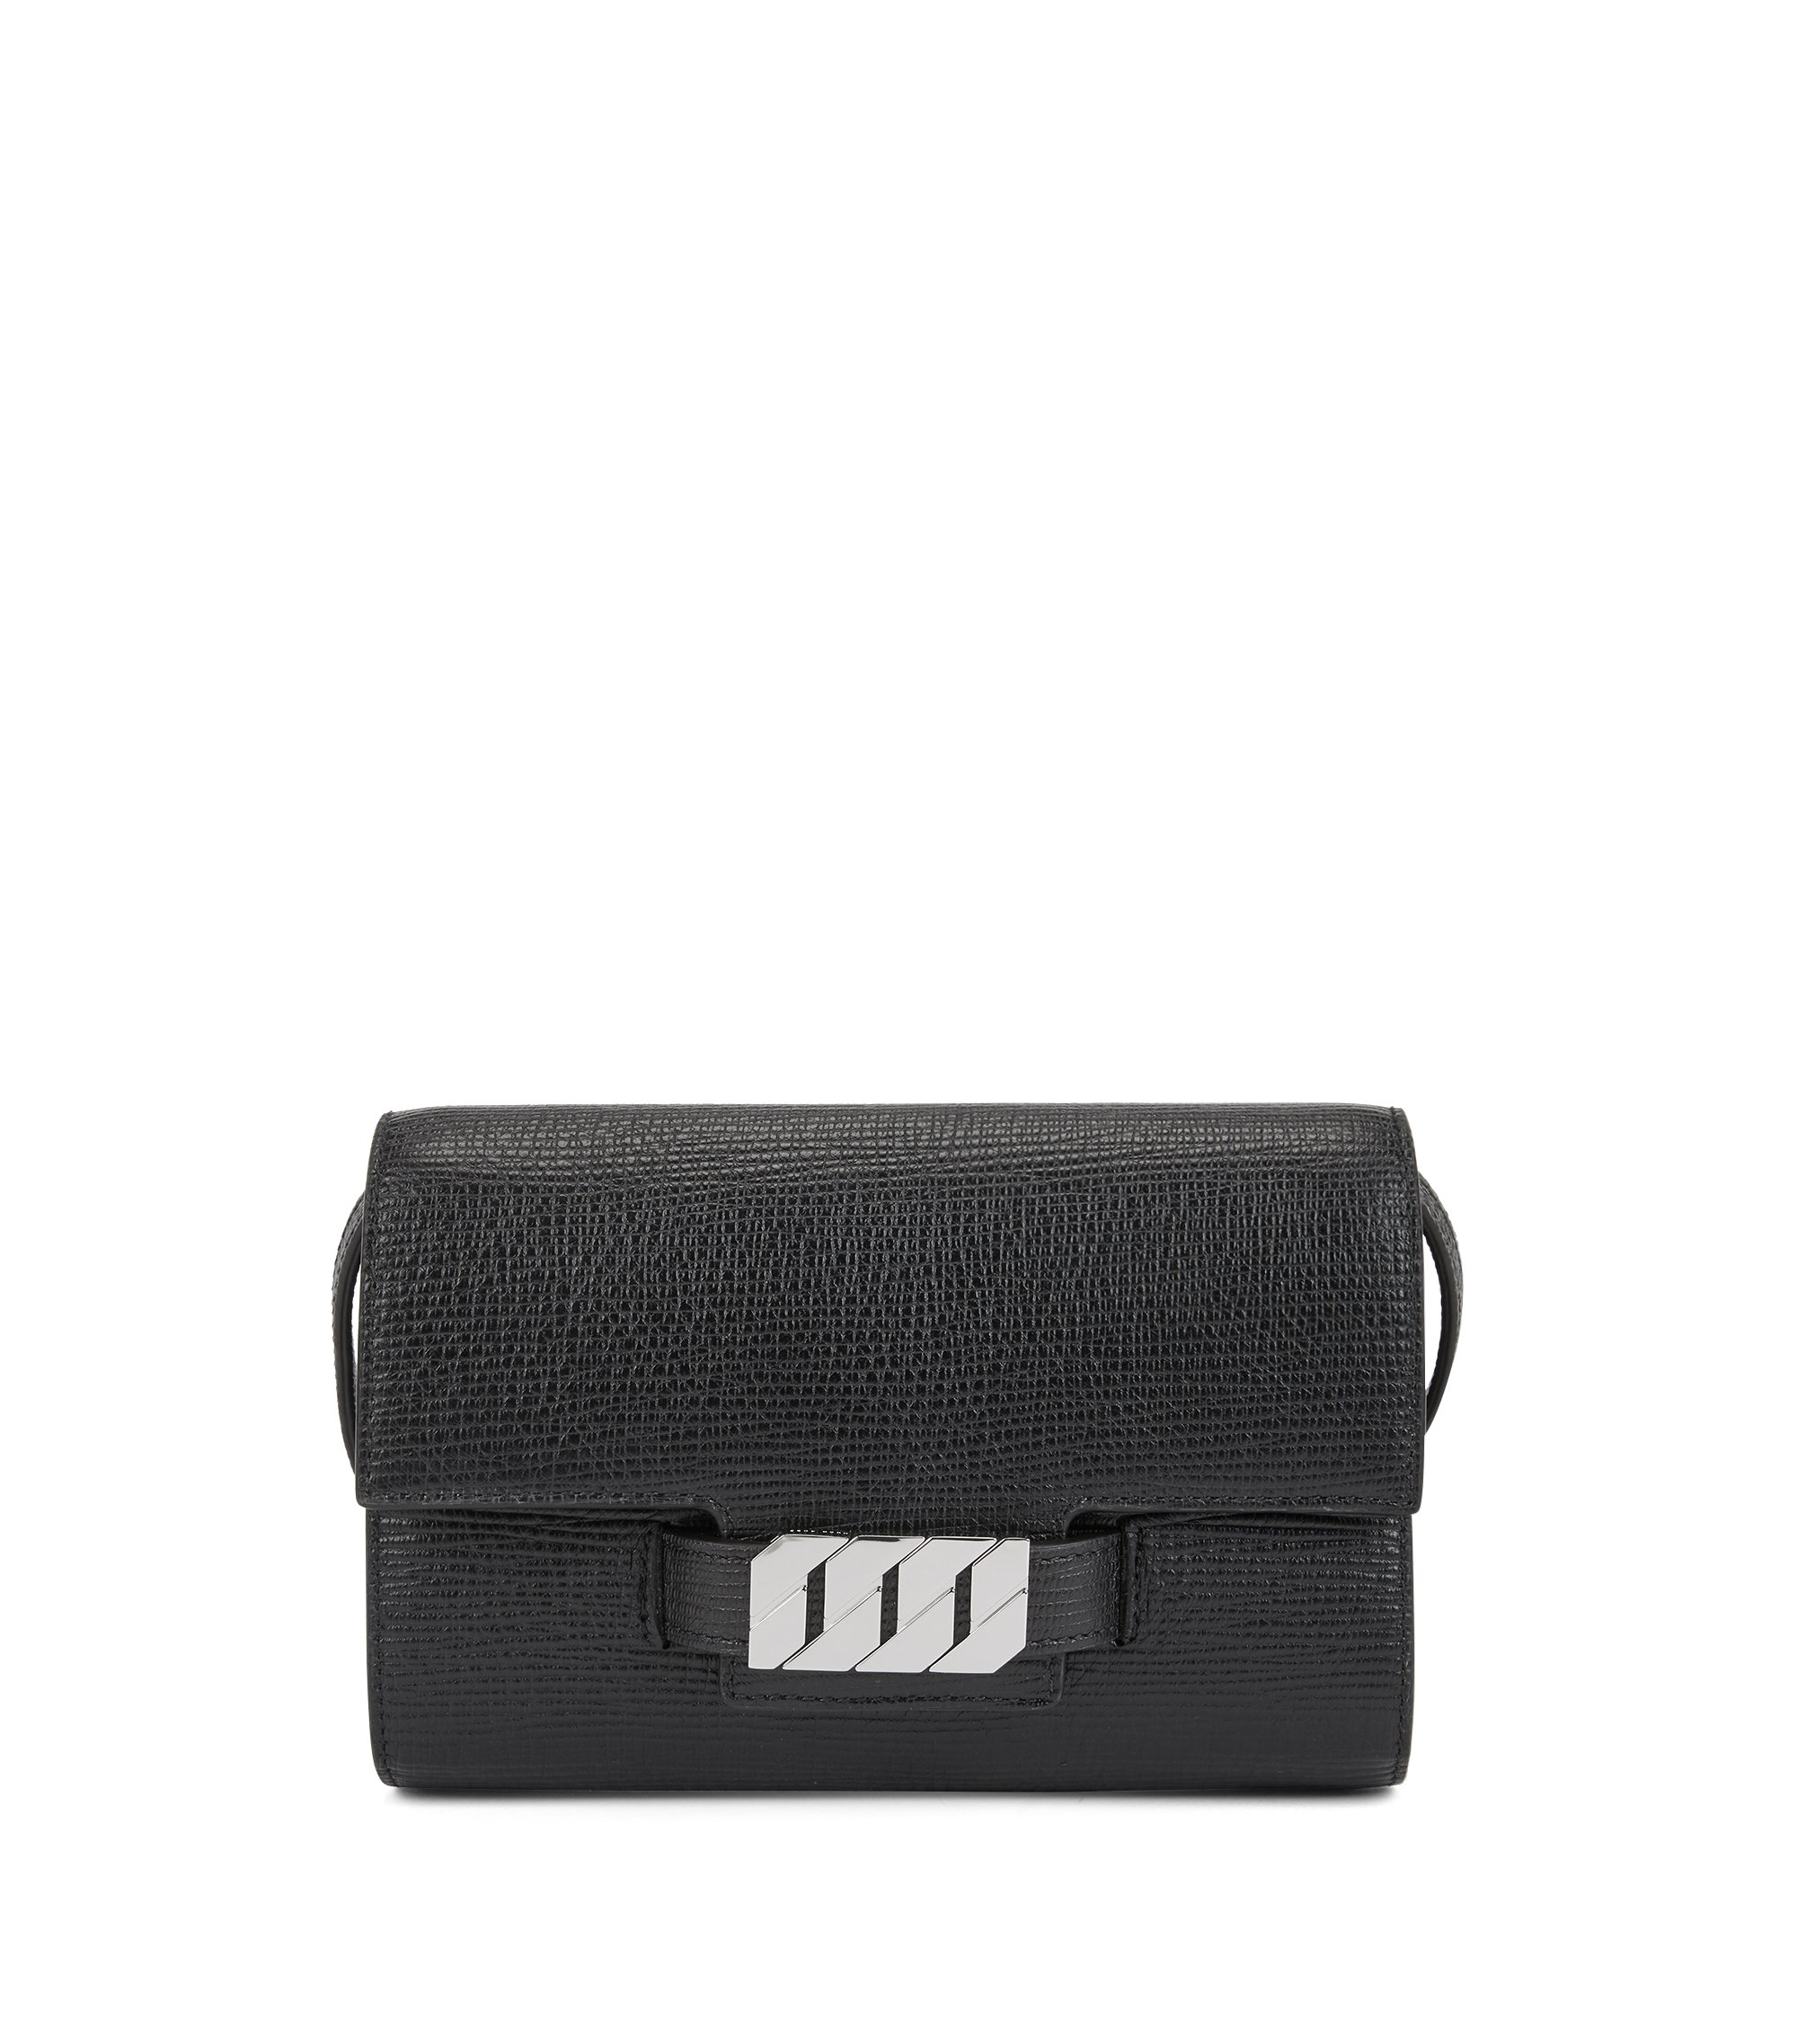 Clutch bag in Italian calf leather with signature hardware, Black